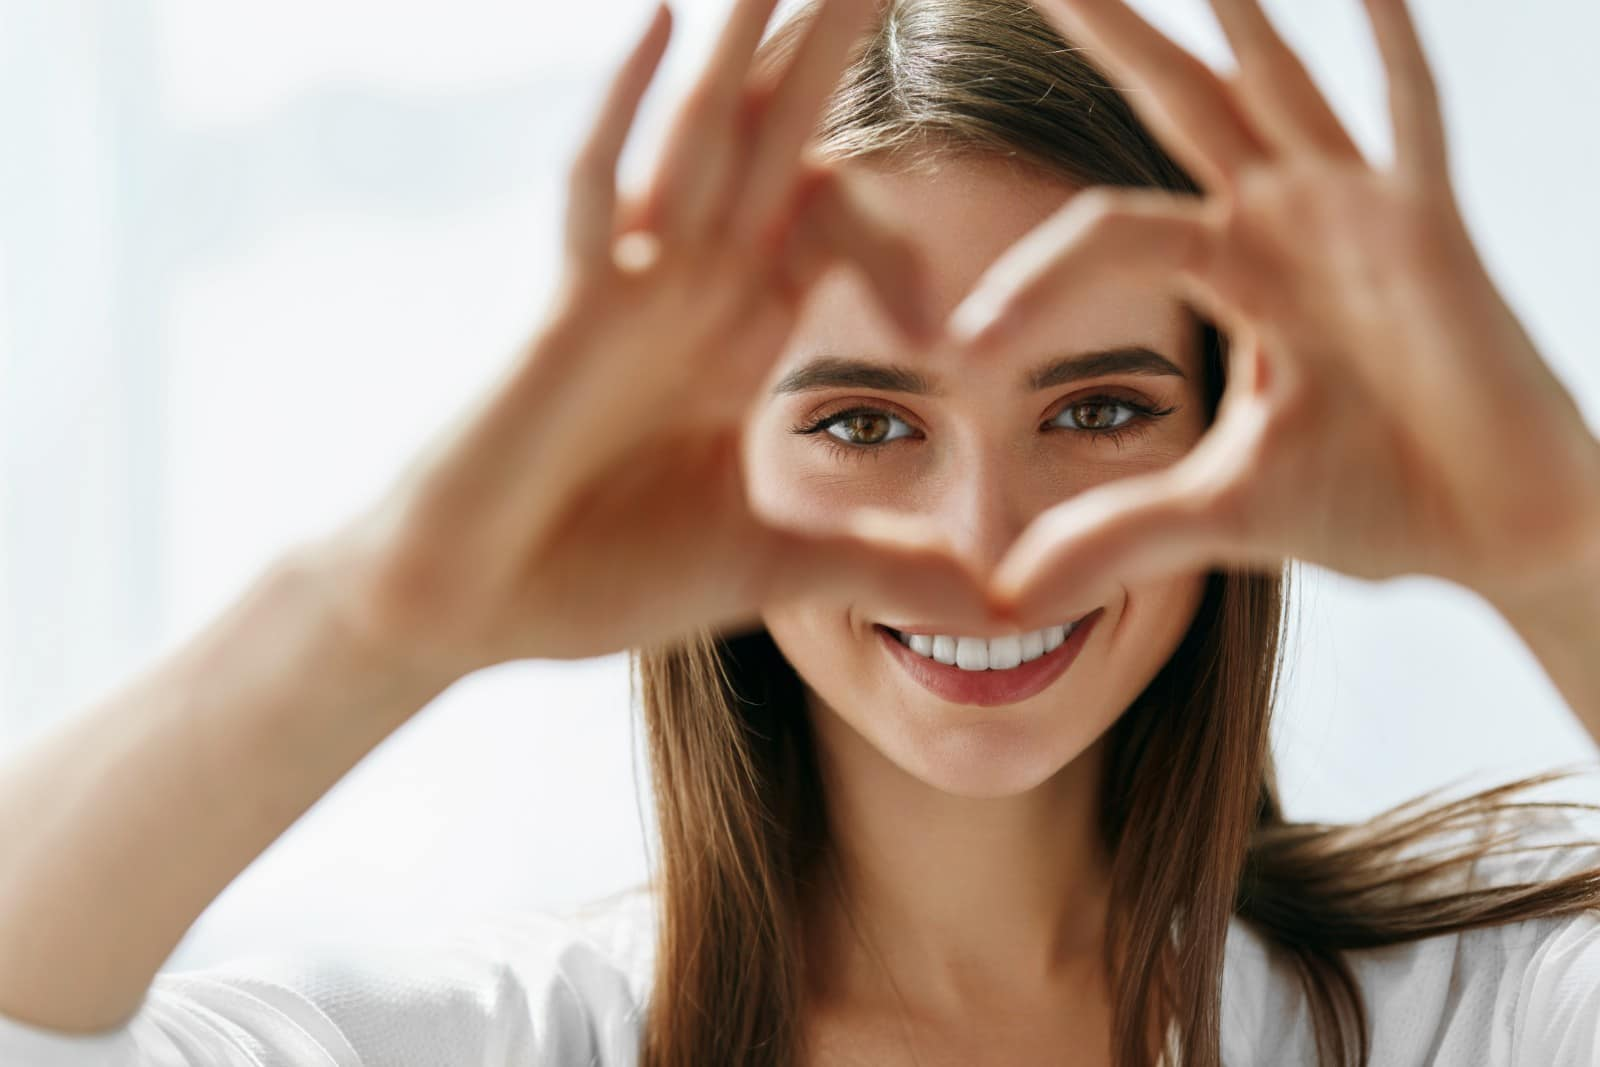 Donate Eggs – Become an Egg Donor